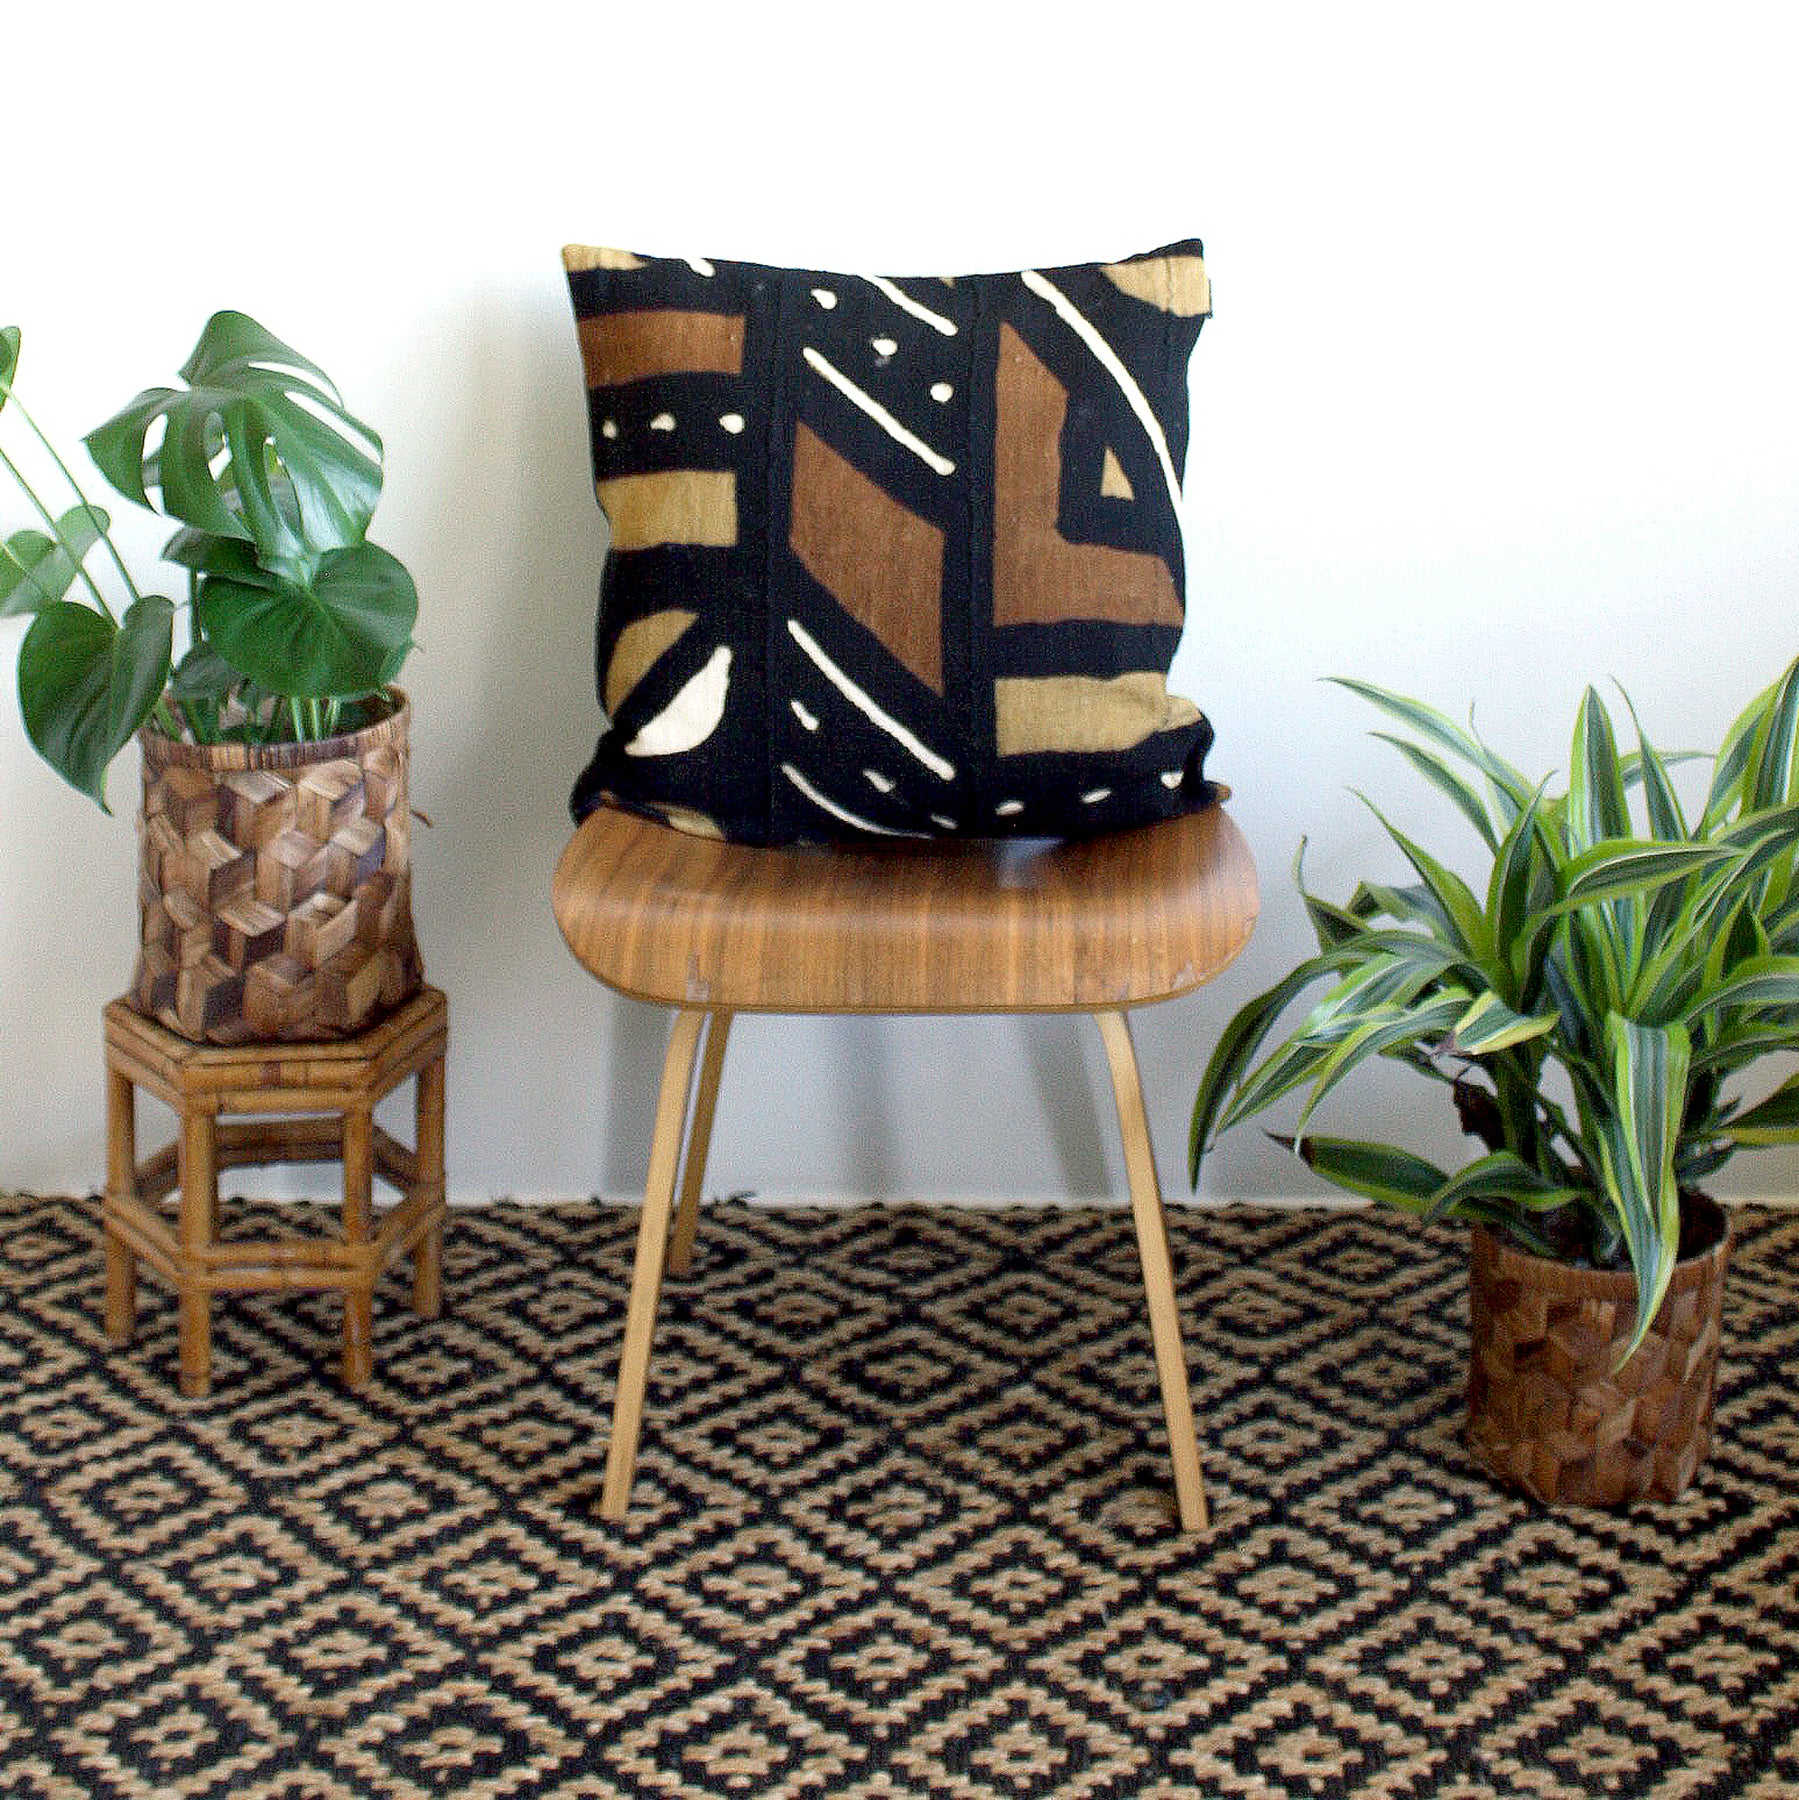 20x20 Square - Black, Mustard & Rust Mudcloth Pillow Cover - Black Linen Back, Black Zipper